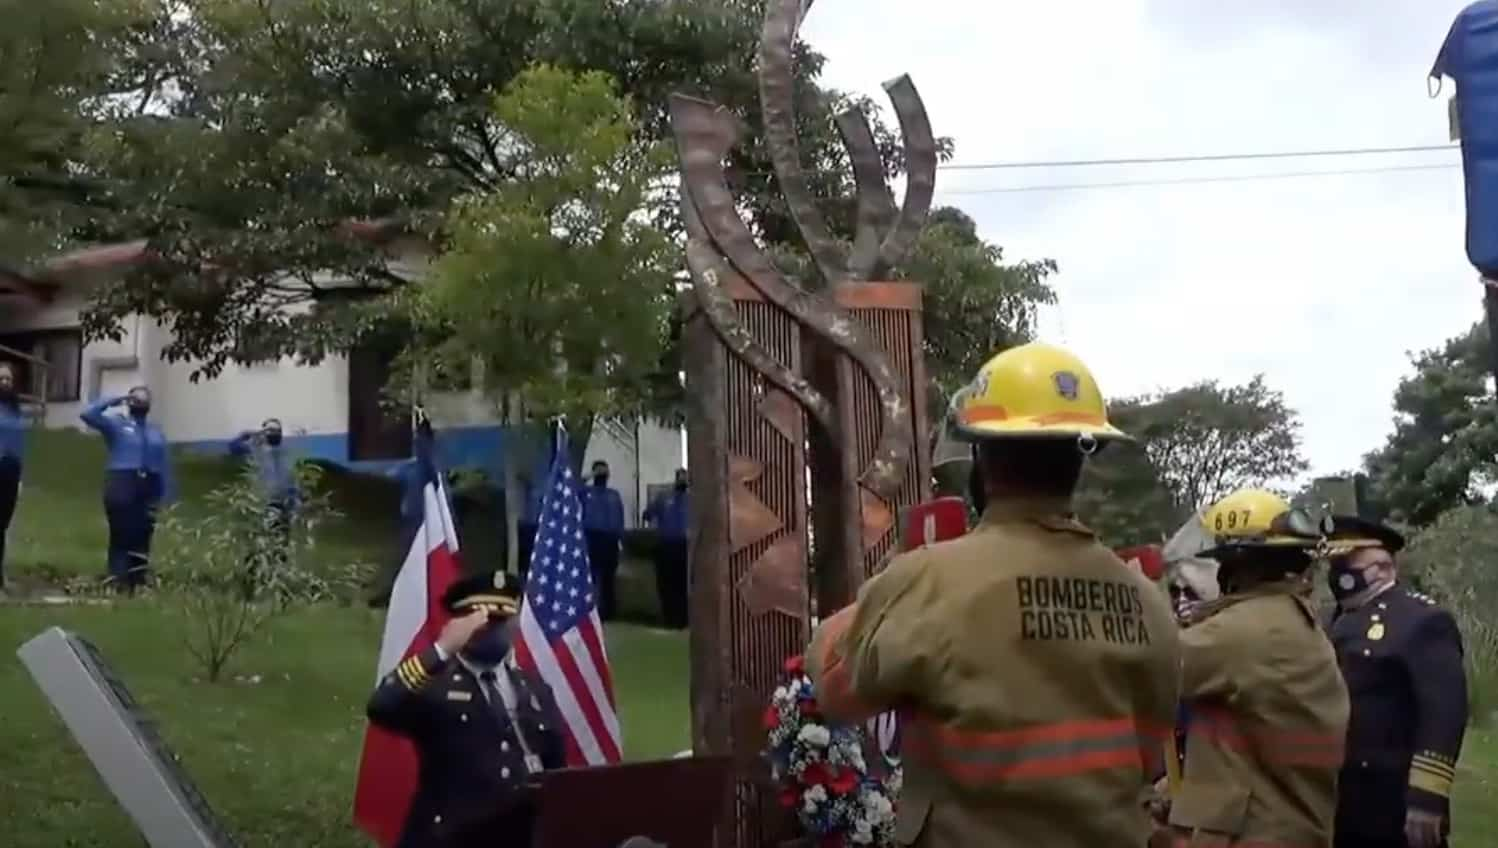 Wreath-laying ceremony honoring victims of the September 11 terrorist attacks.